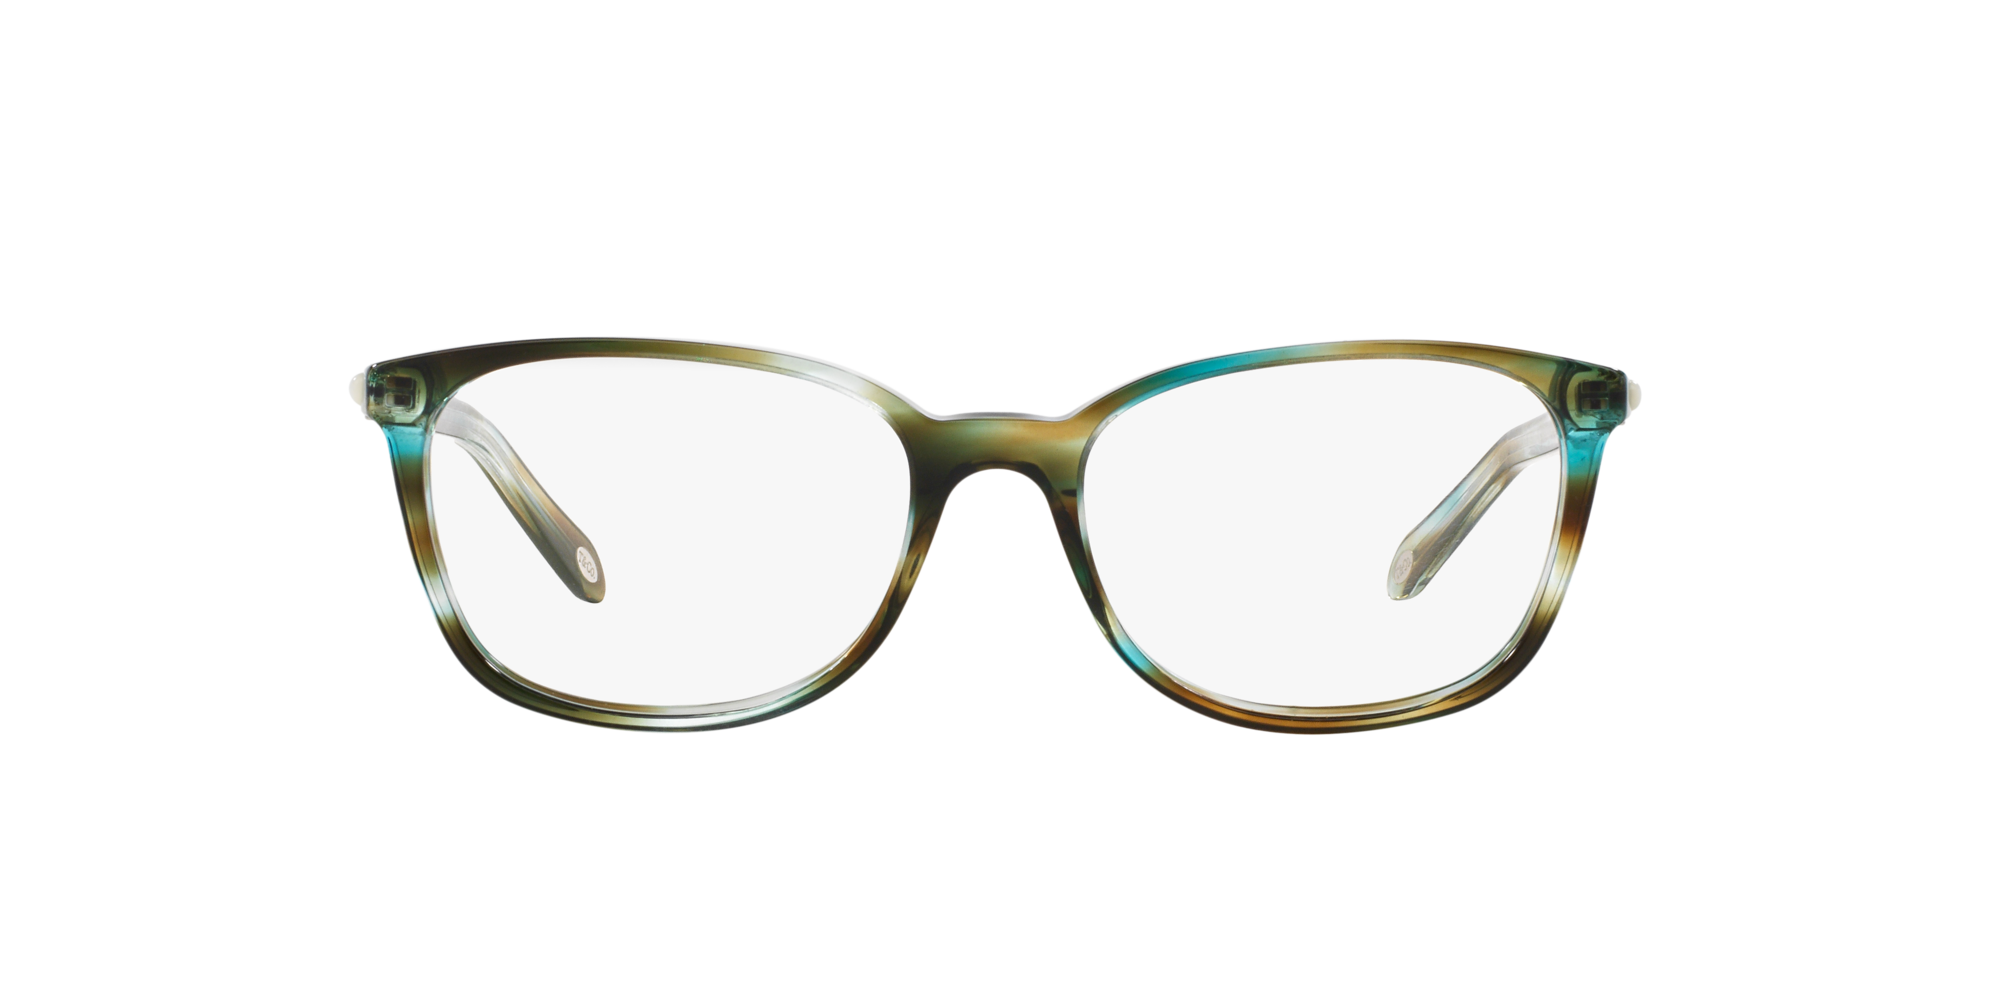 Image for TF2109BF from LensCrafters   Glasses, Prescription Glasses Online, Eyewear